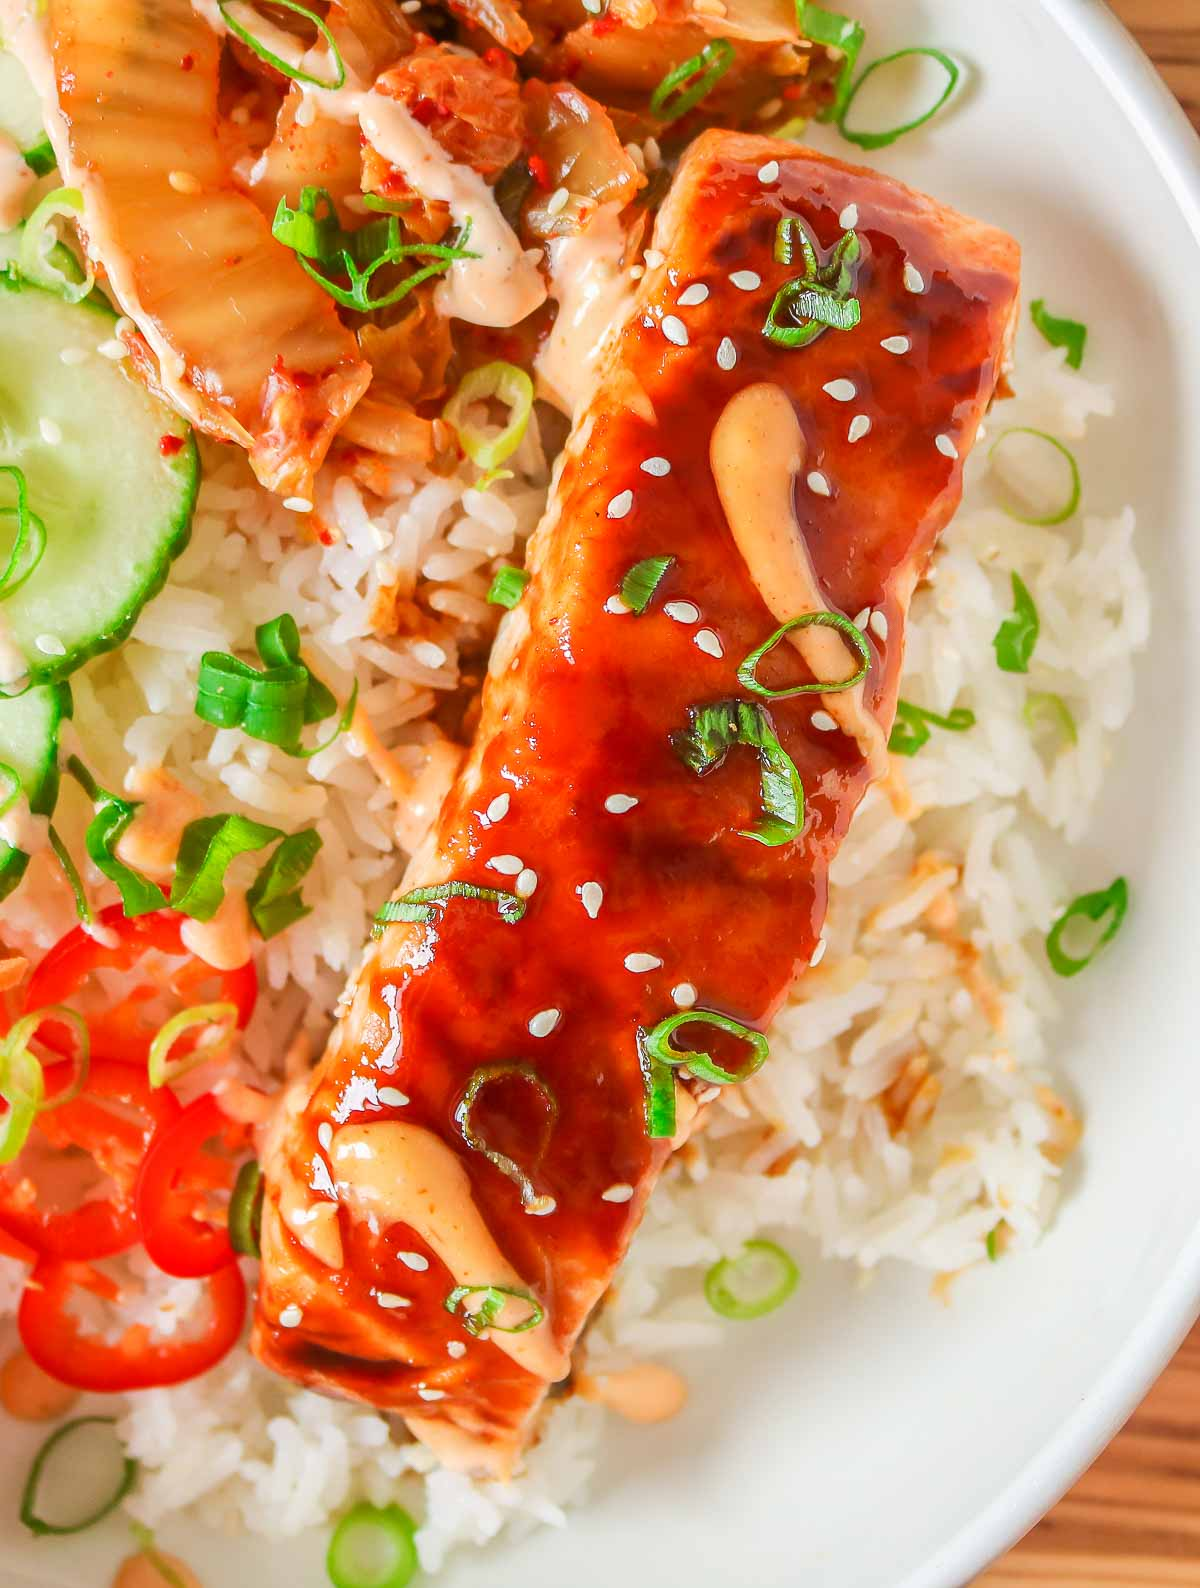 Close-up of a spicy salmon fillet on top of rice.